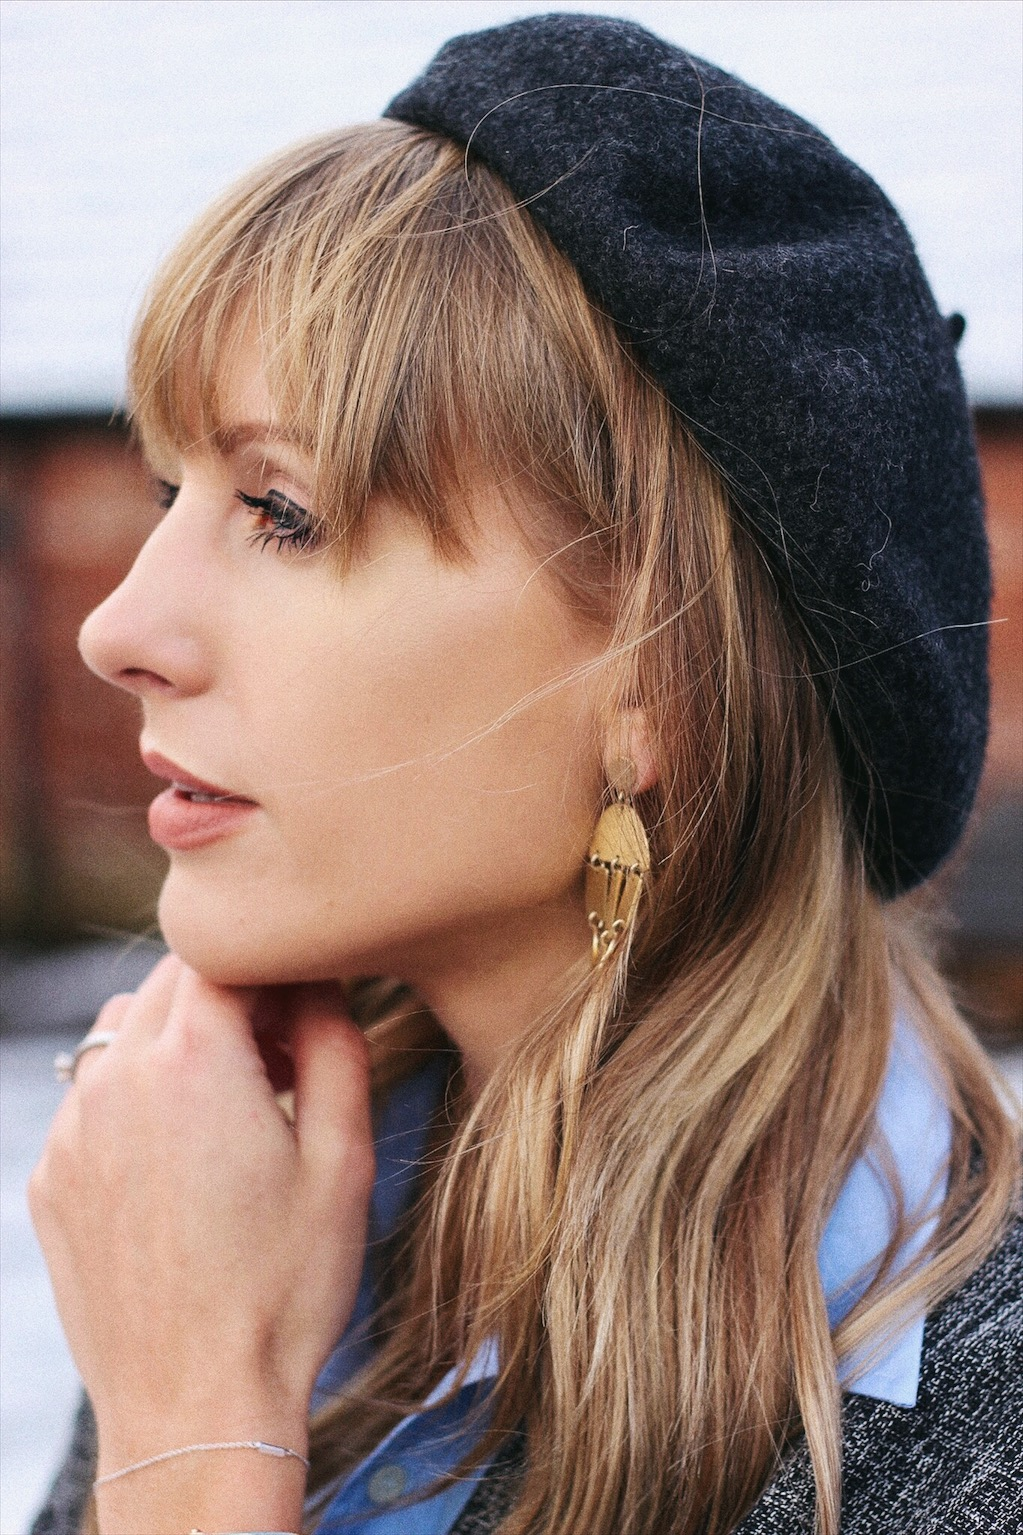 topshop beret on style blog hat inspiration for autumn